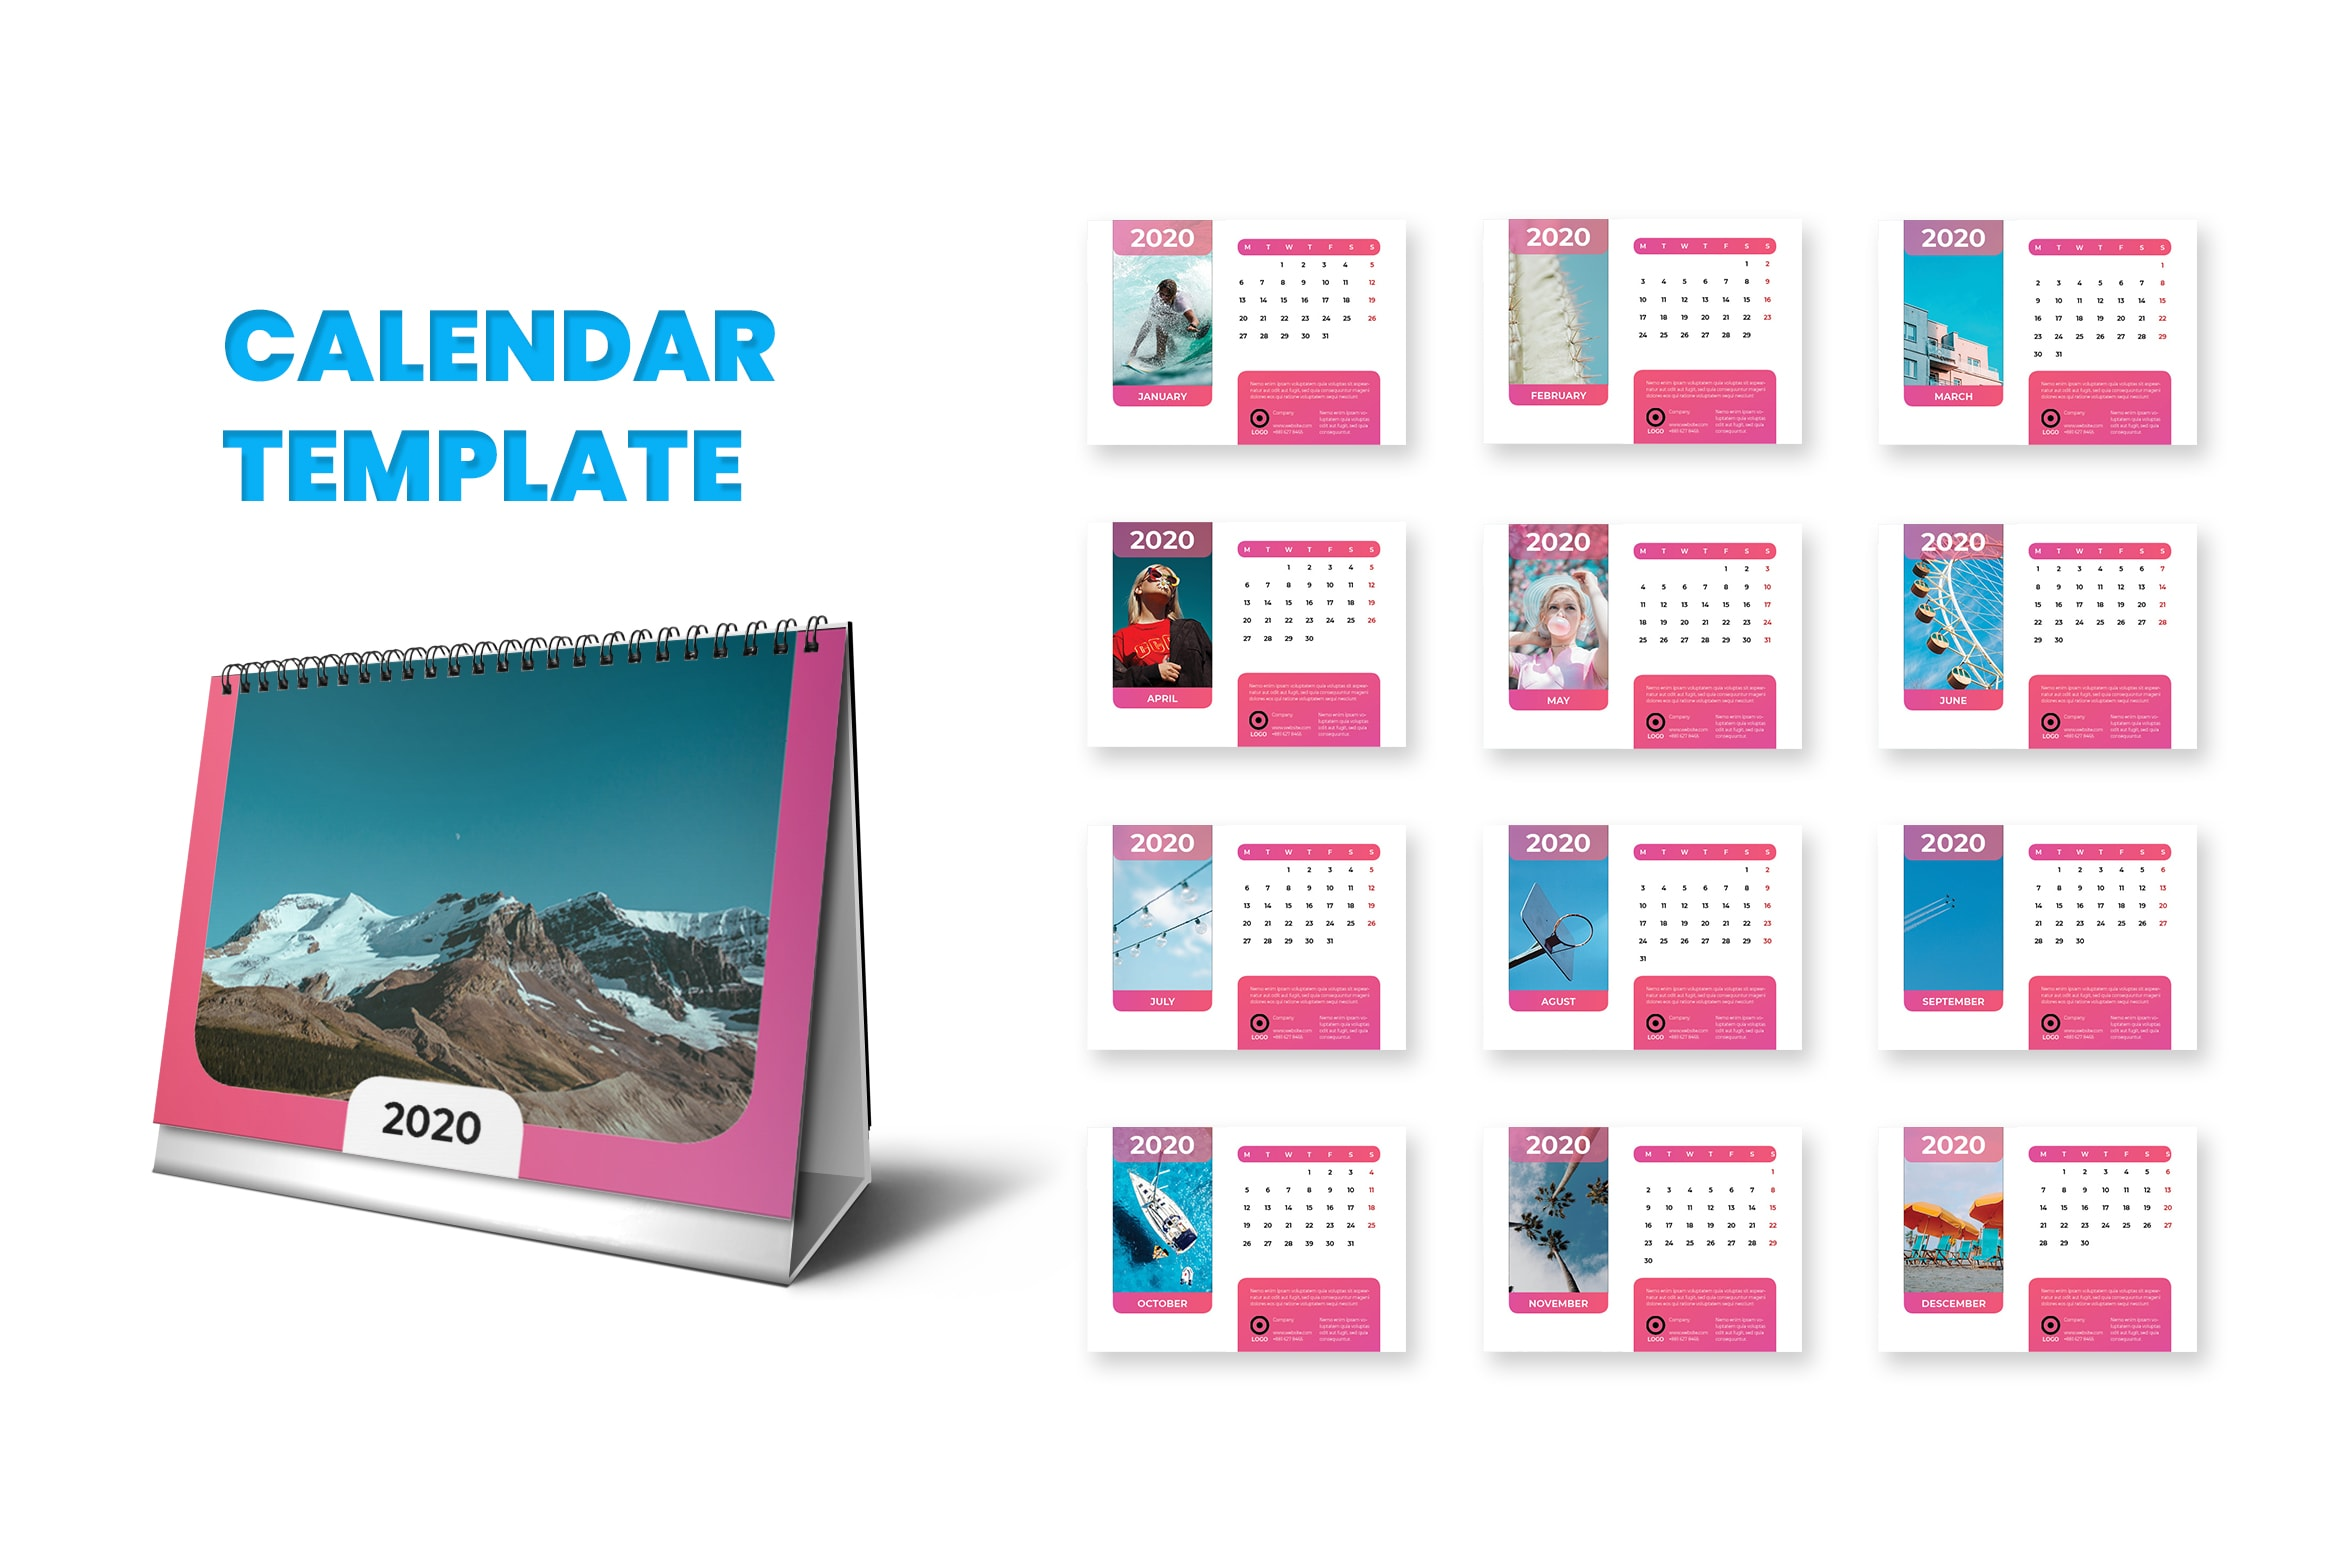 Calender - Millenial Style Template